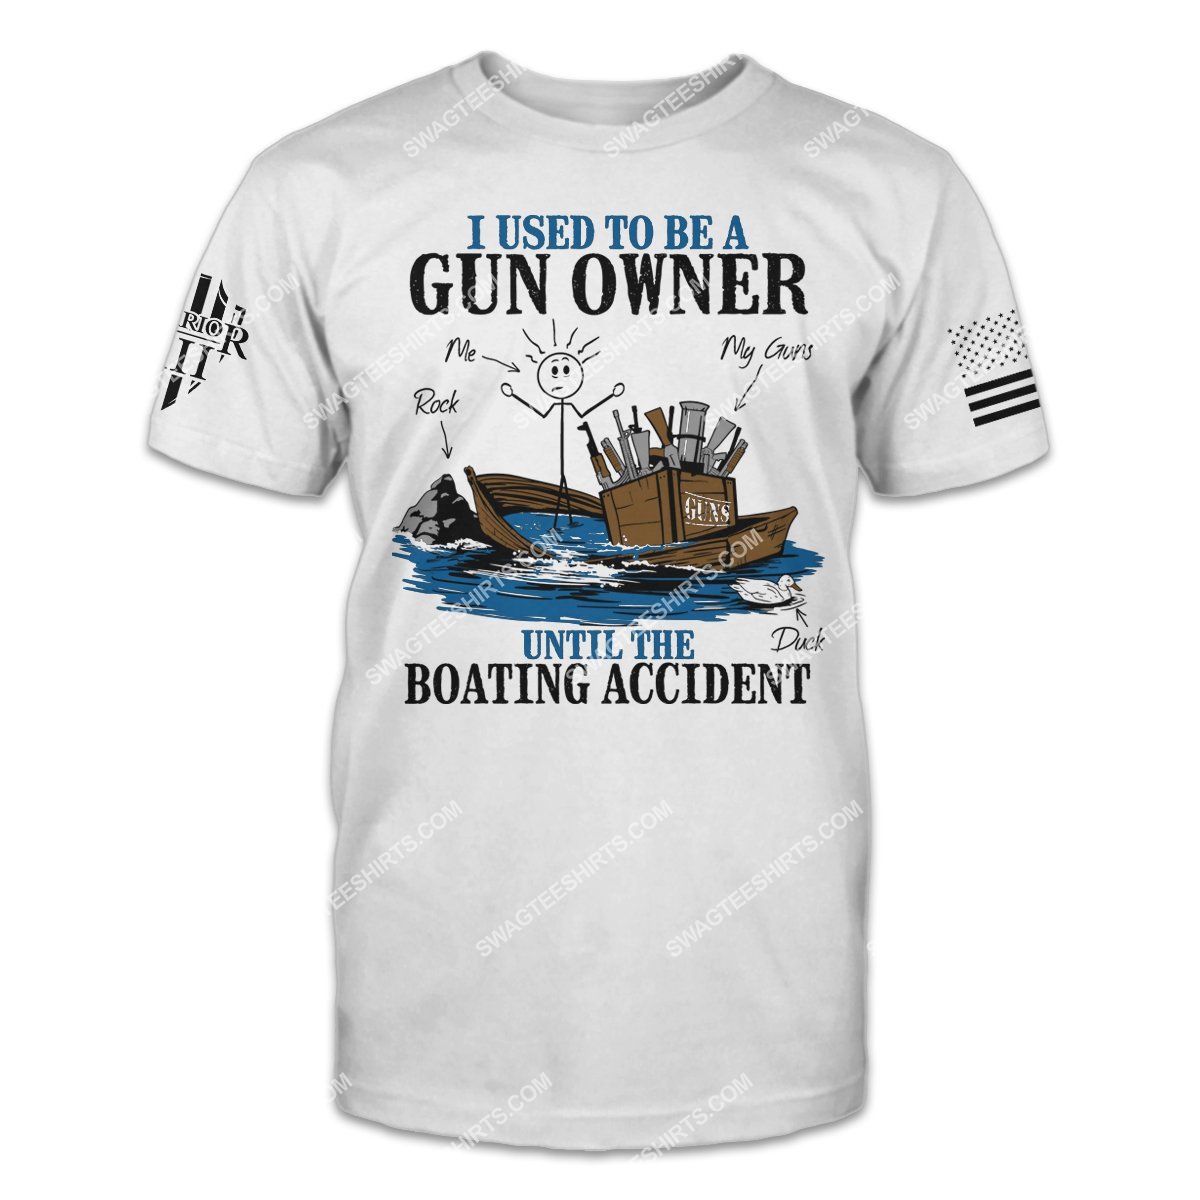 i used to be a gun owner until the boating accident politics shirt 1